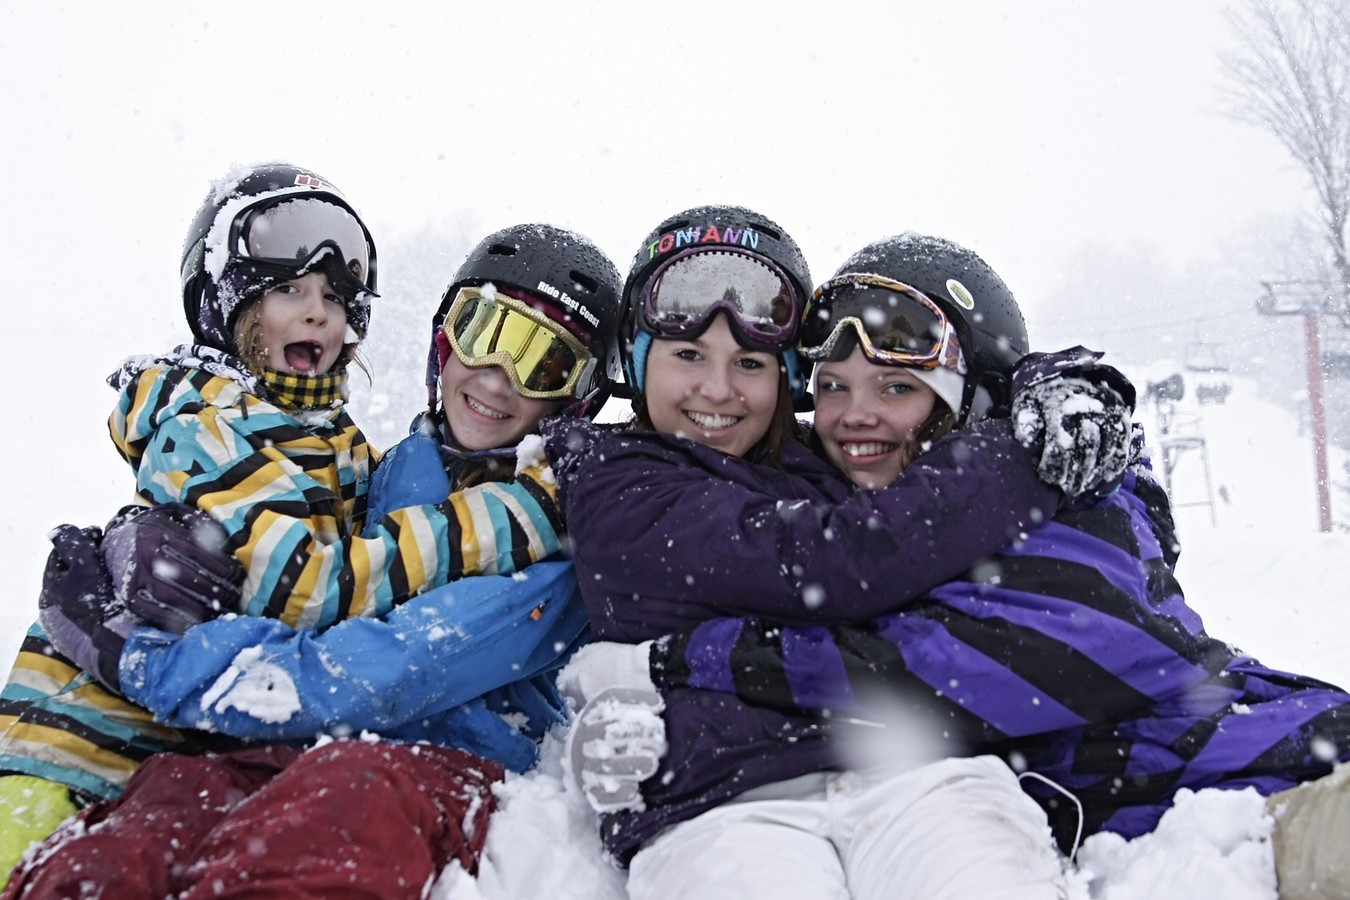 Skiers smiling together in the Catskills